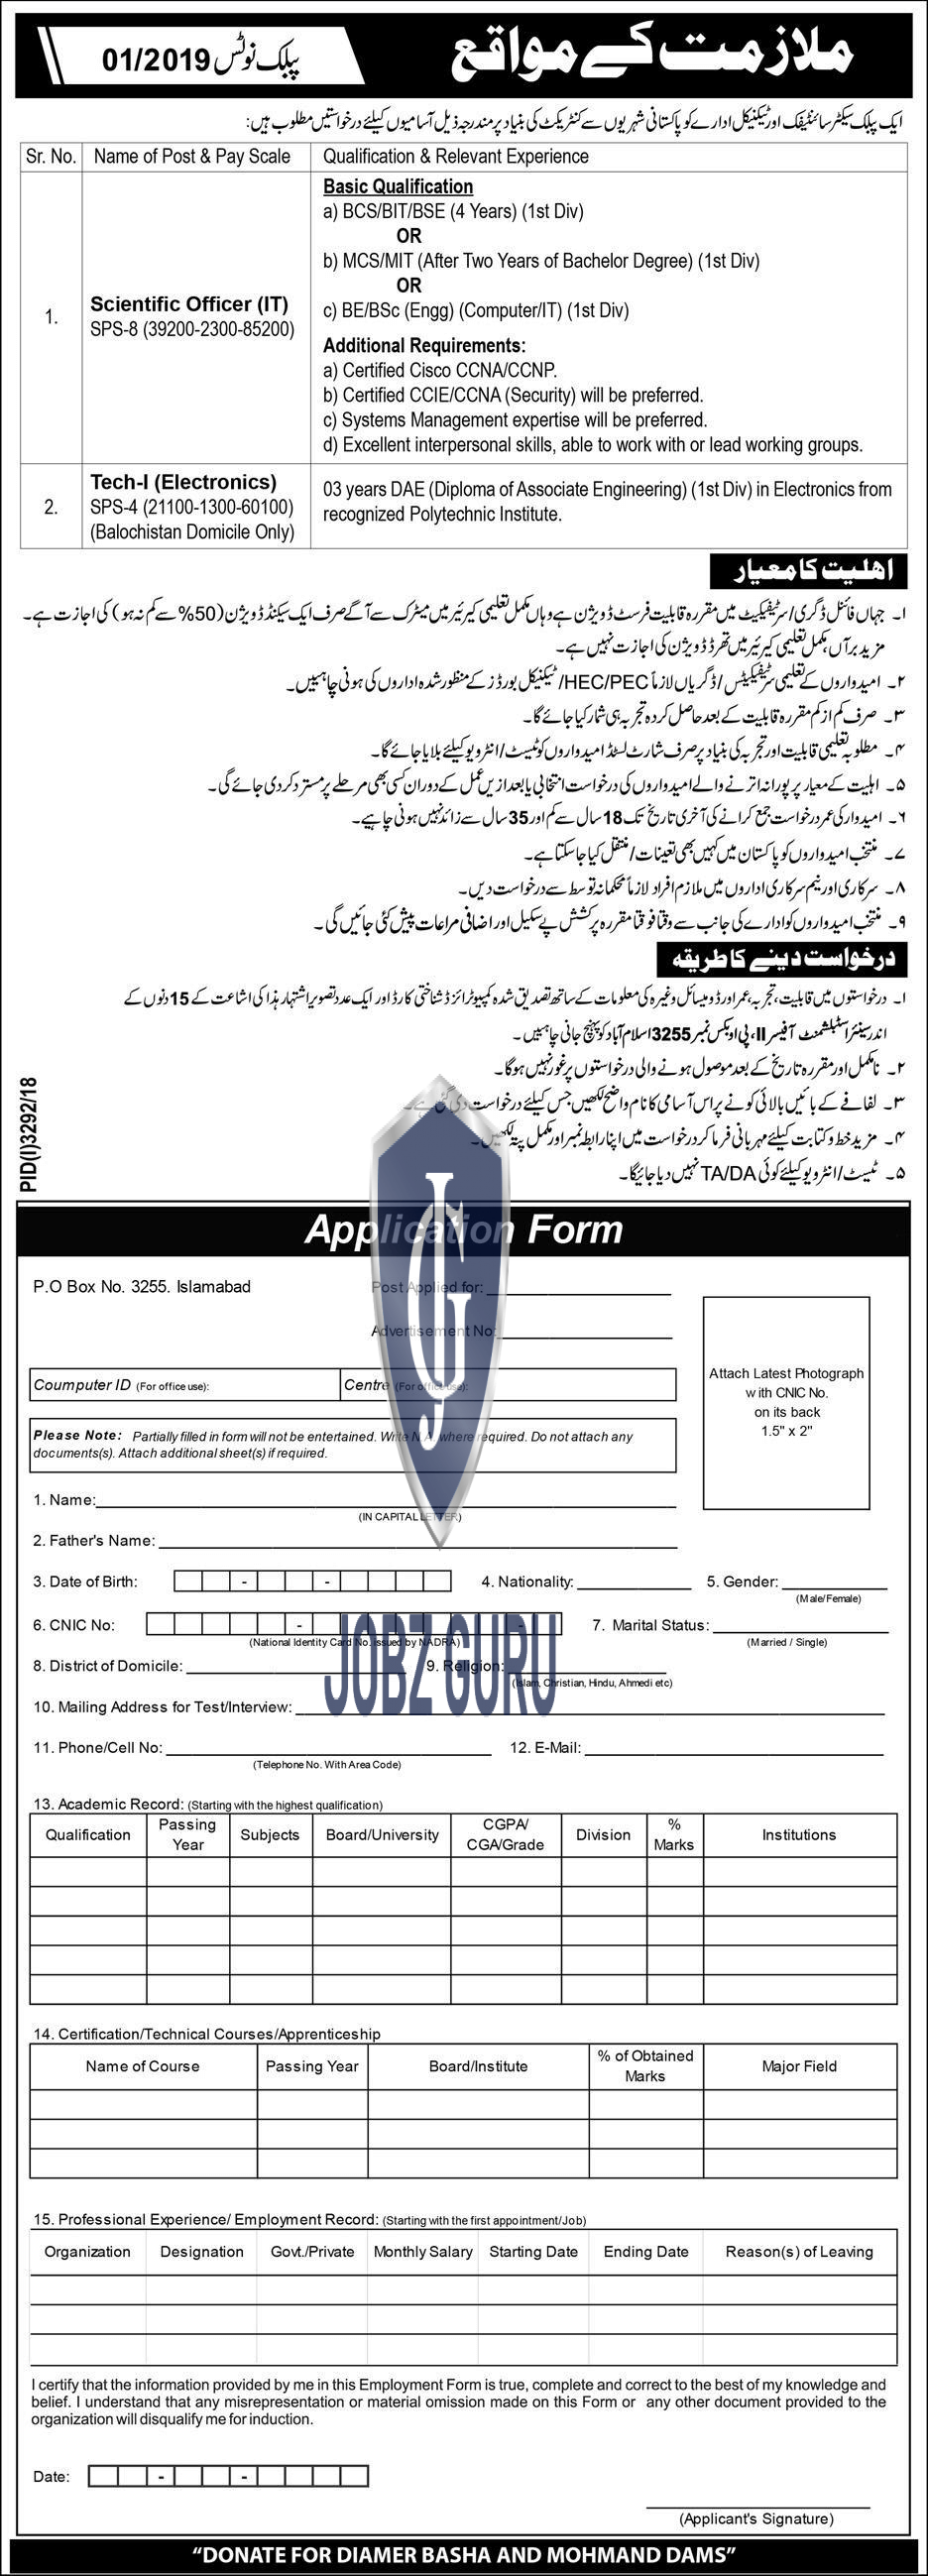 Public Sector Organization Jobs 2019 in Islamabad on January, 2019 | Government